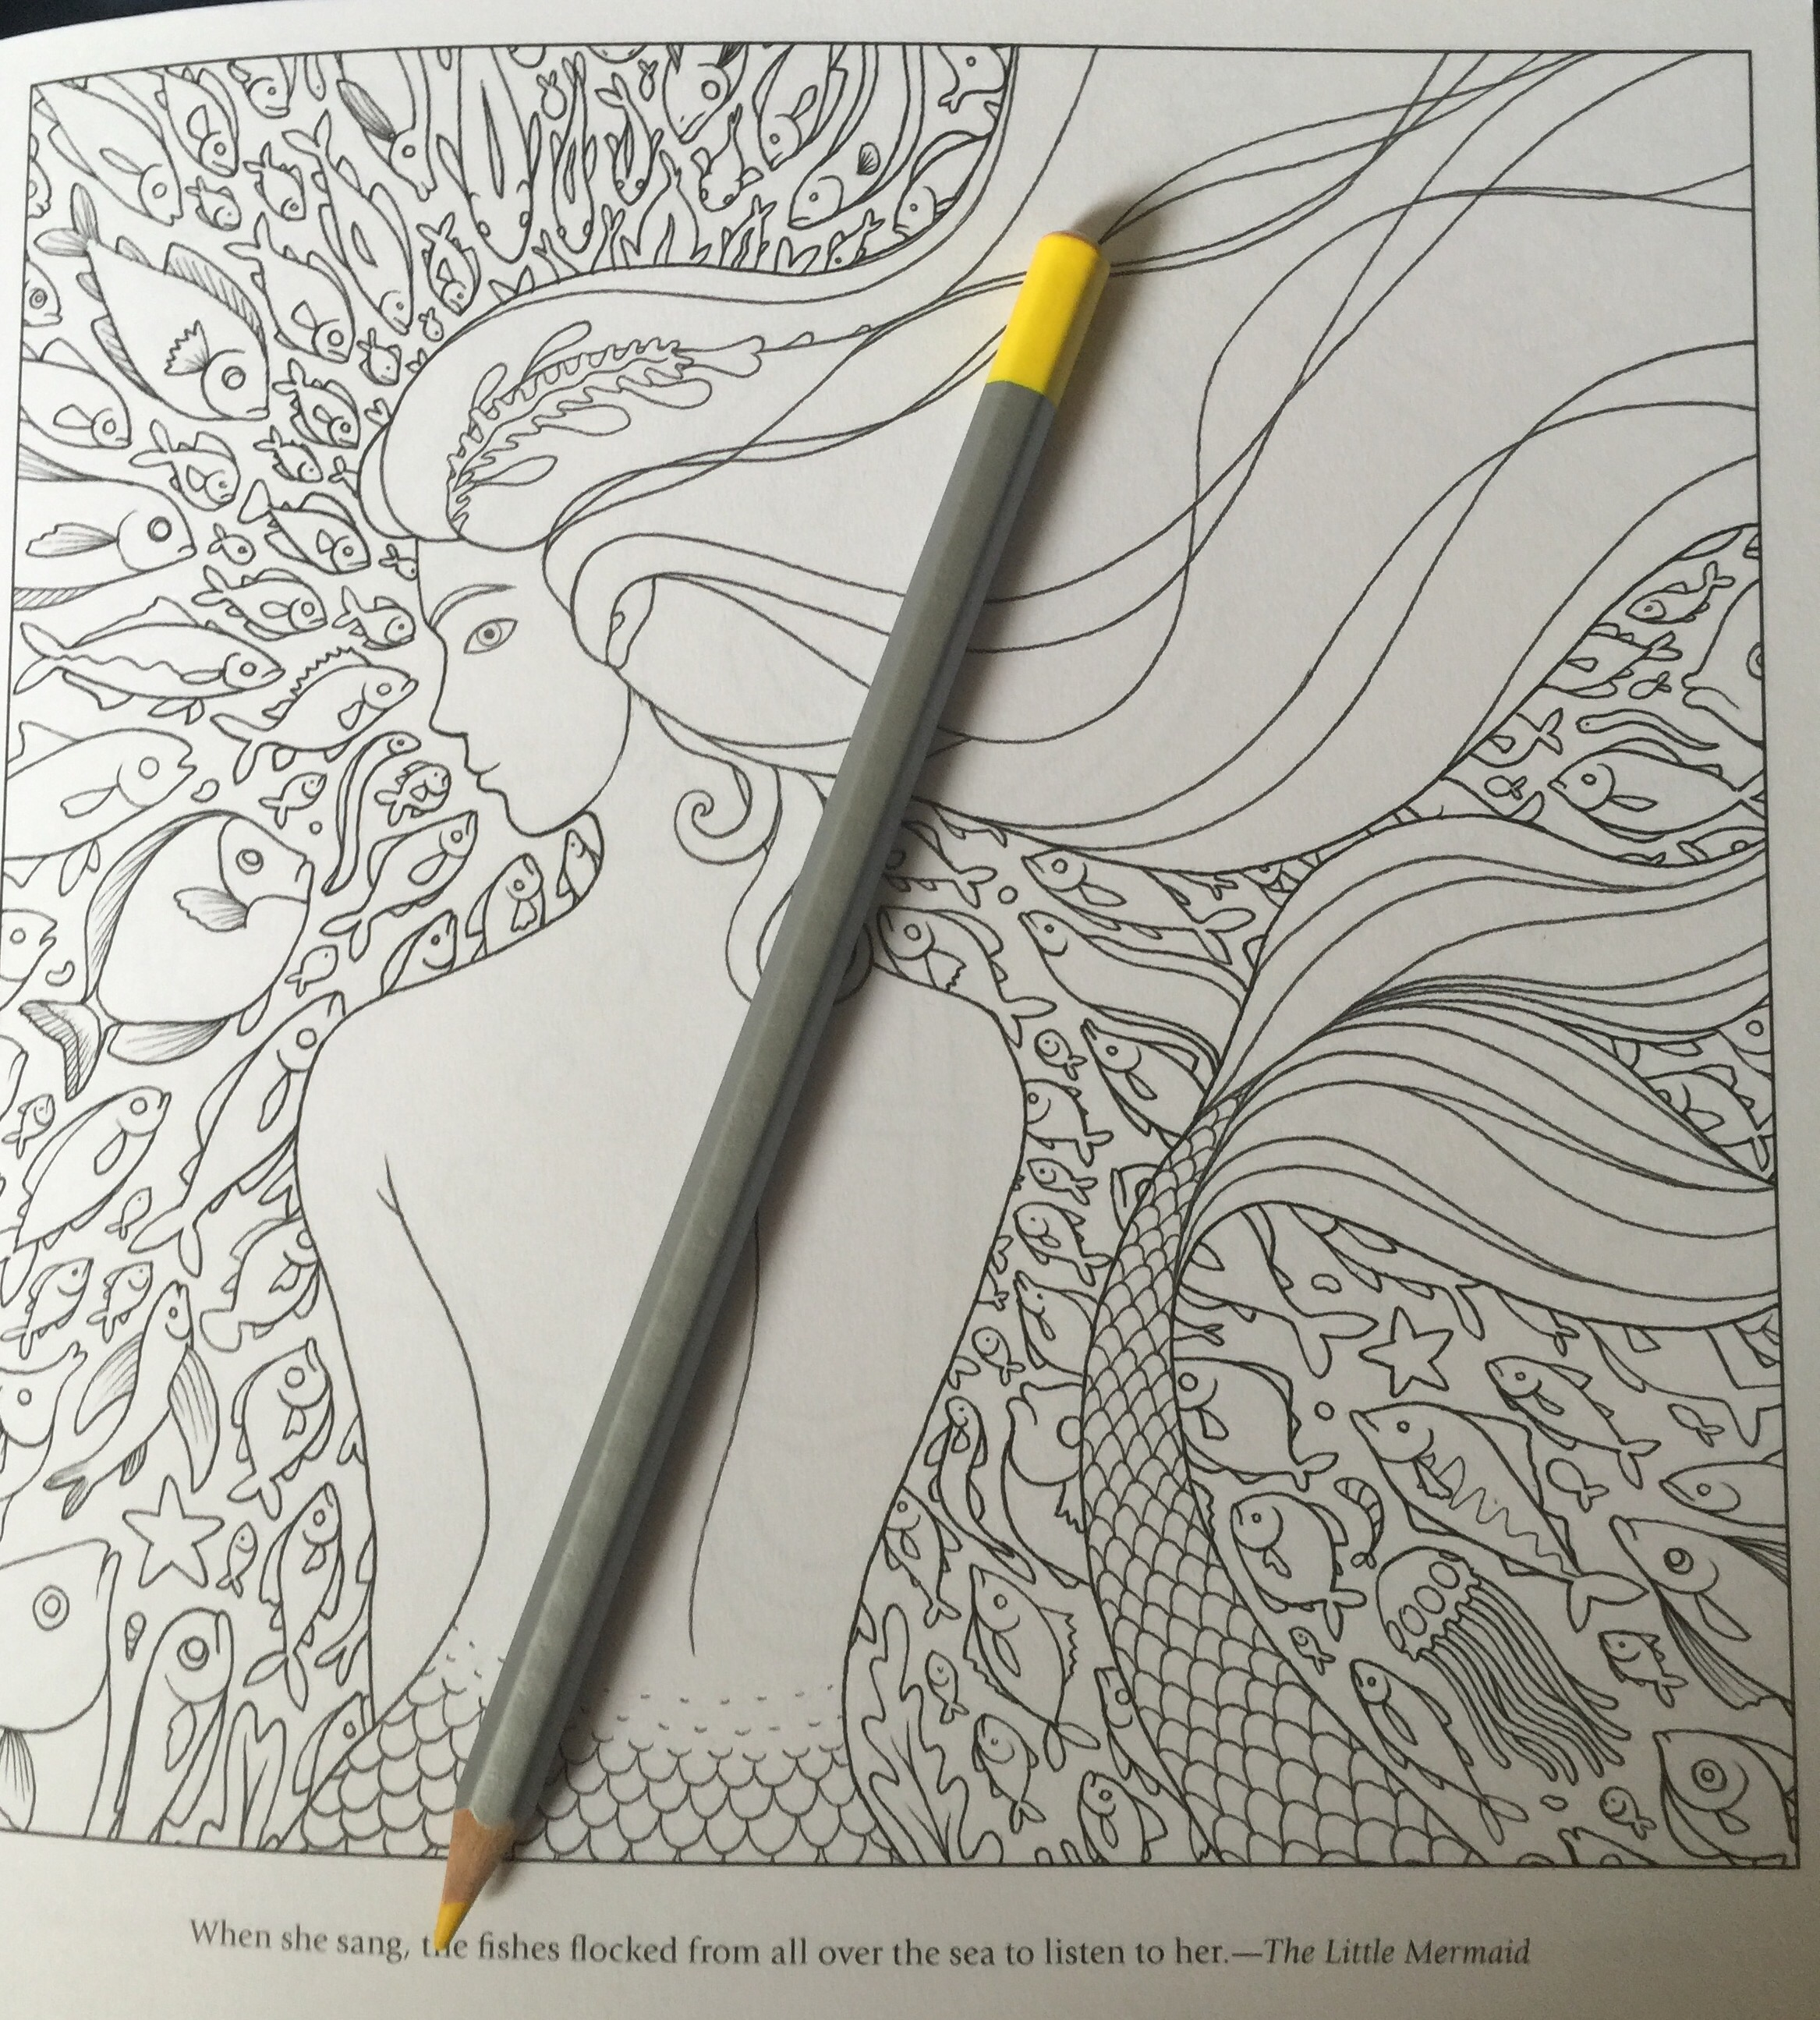 coloring adult fantasy colouring colour color pencils completed fairy tales stress relief art therapy